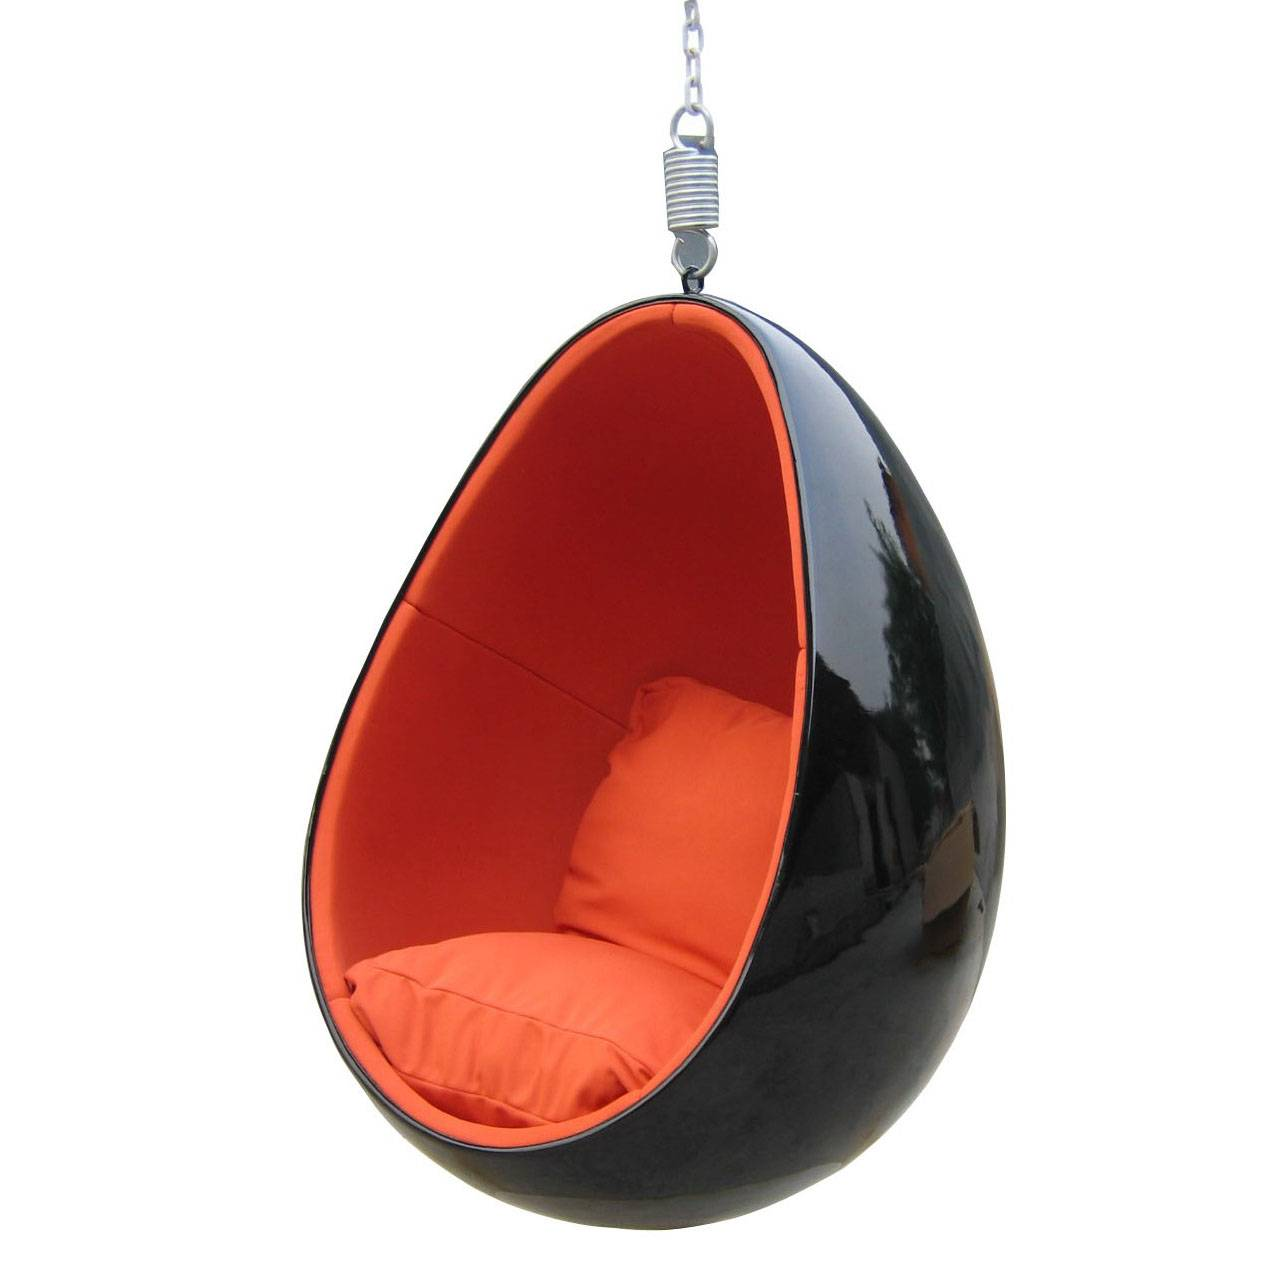 Clear Hanging Egg Chair